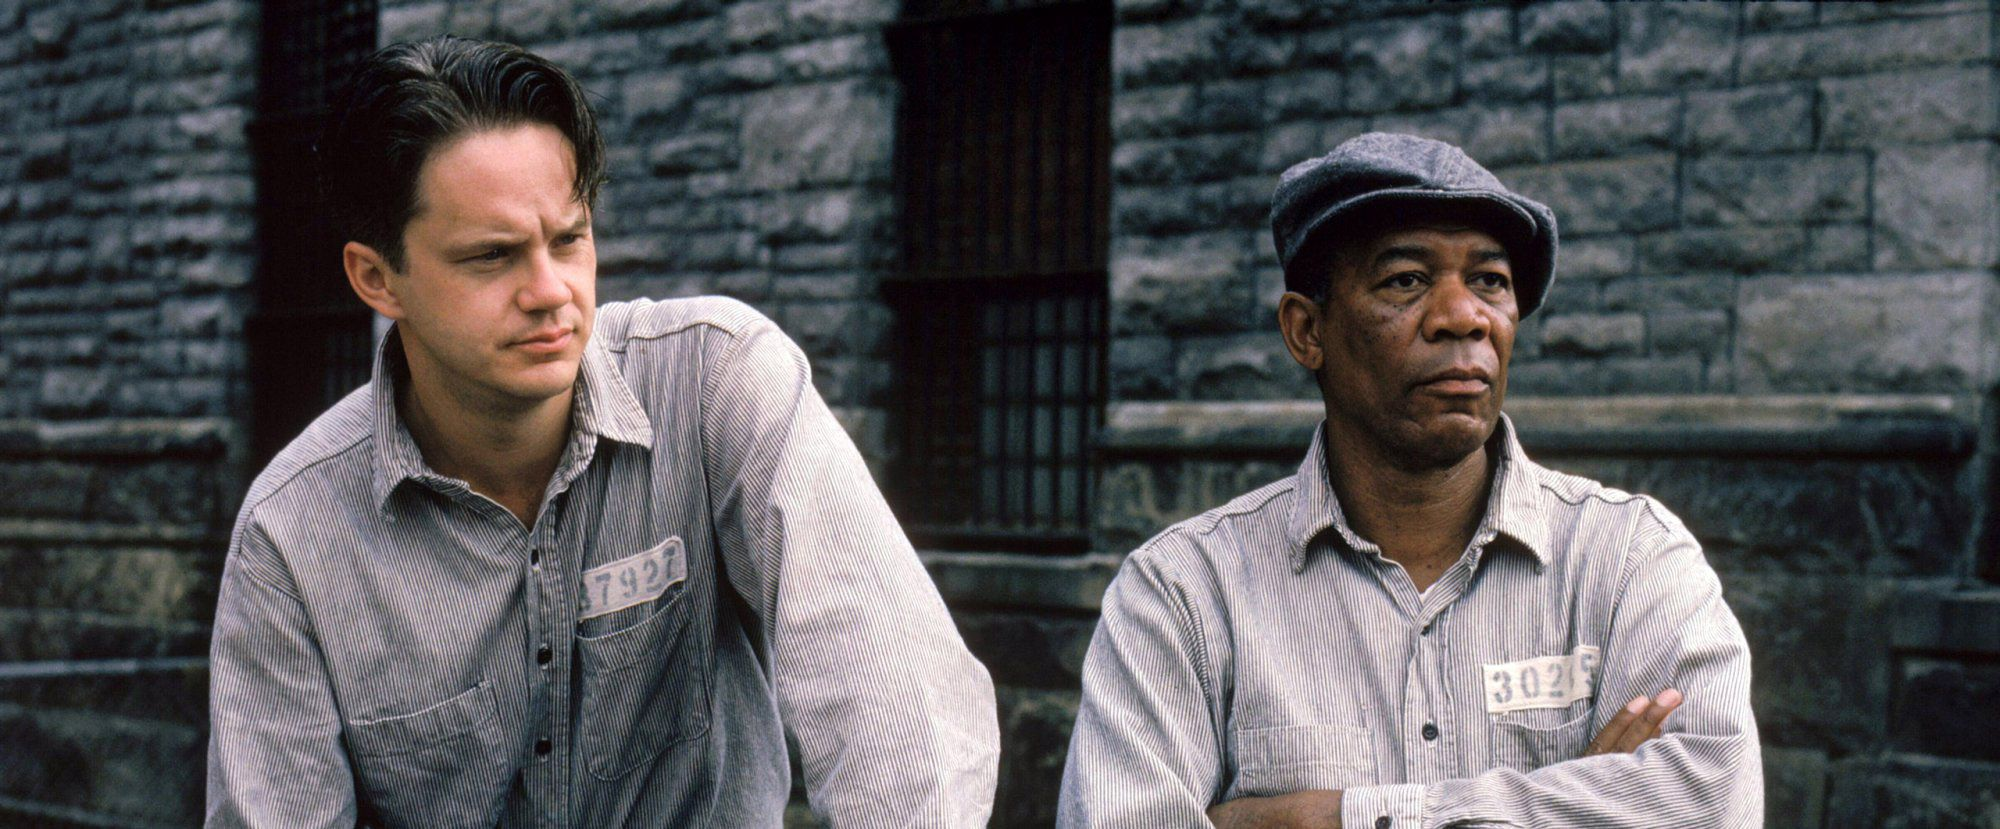 the shawshank redemption film review slant magazine